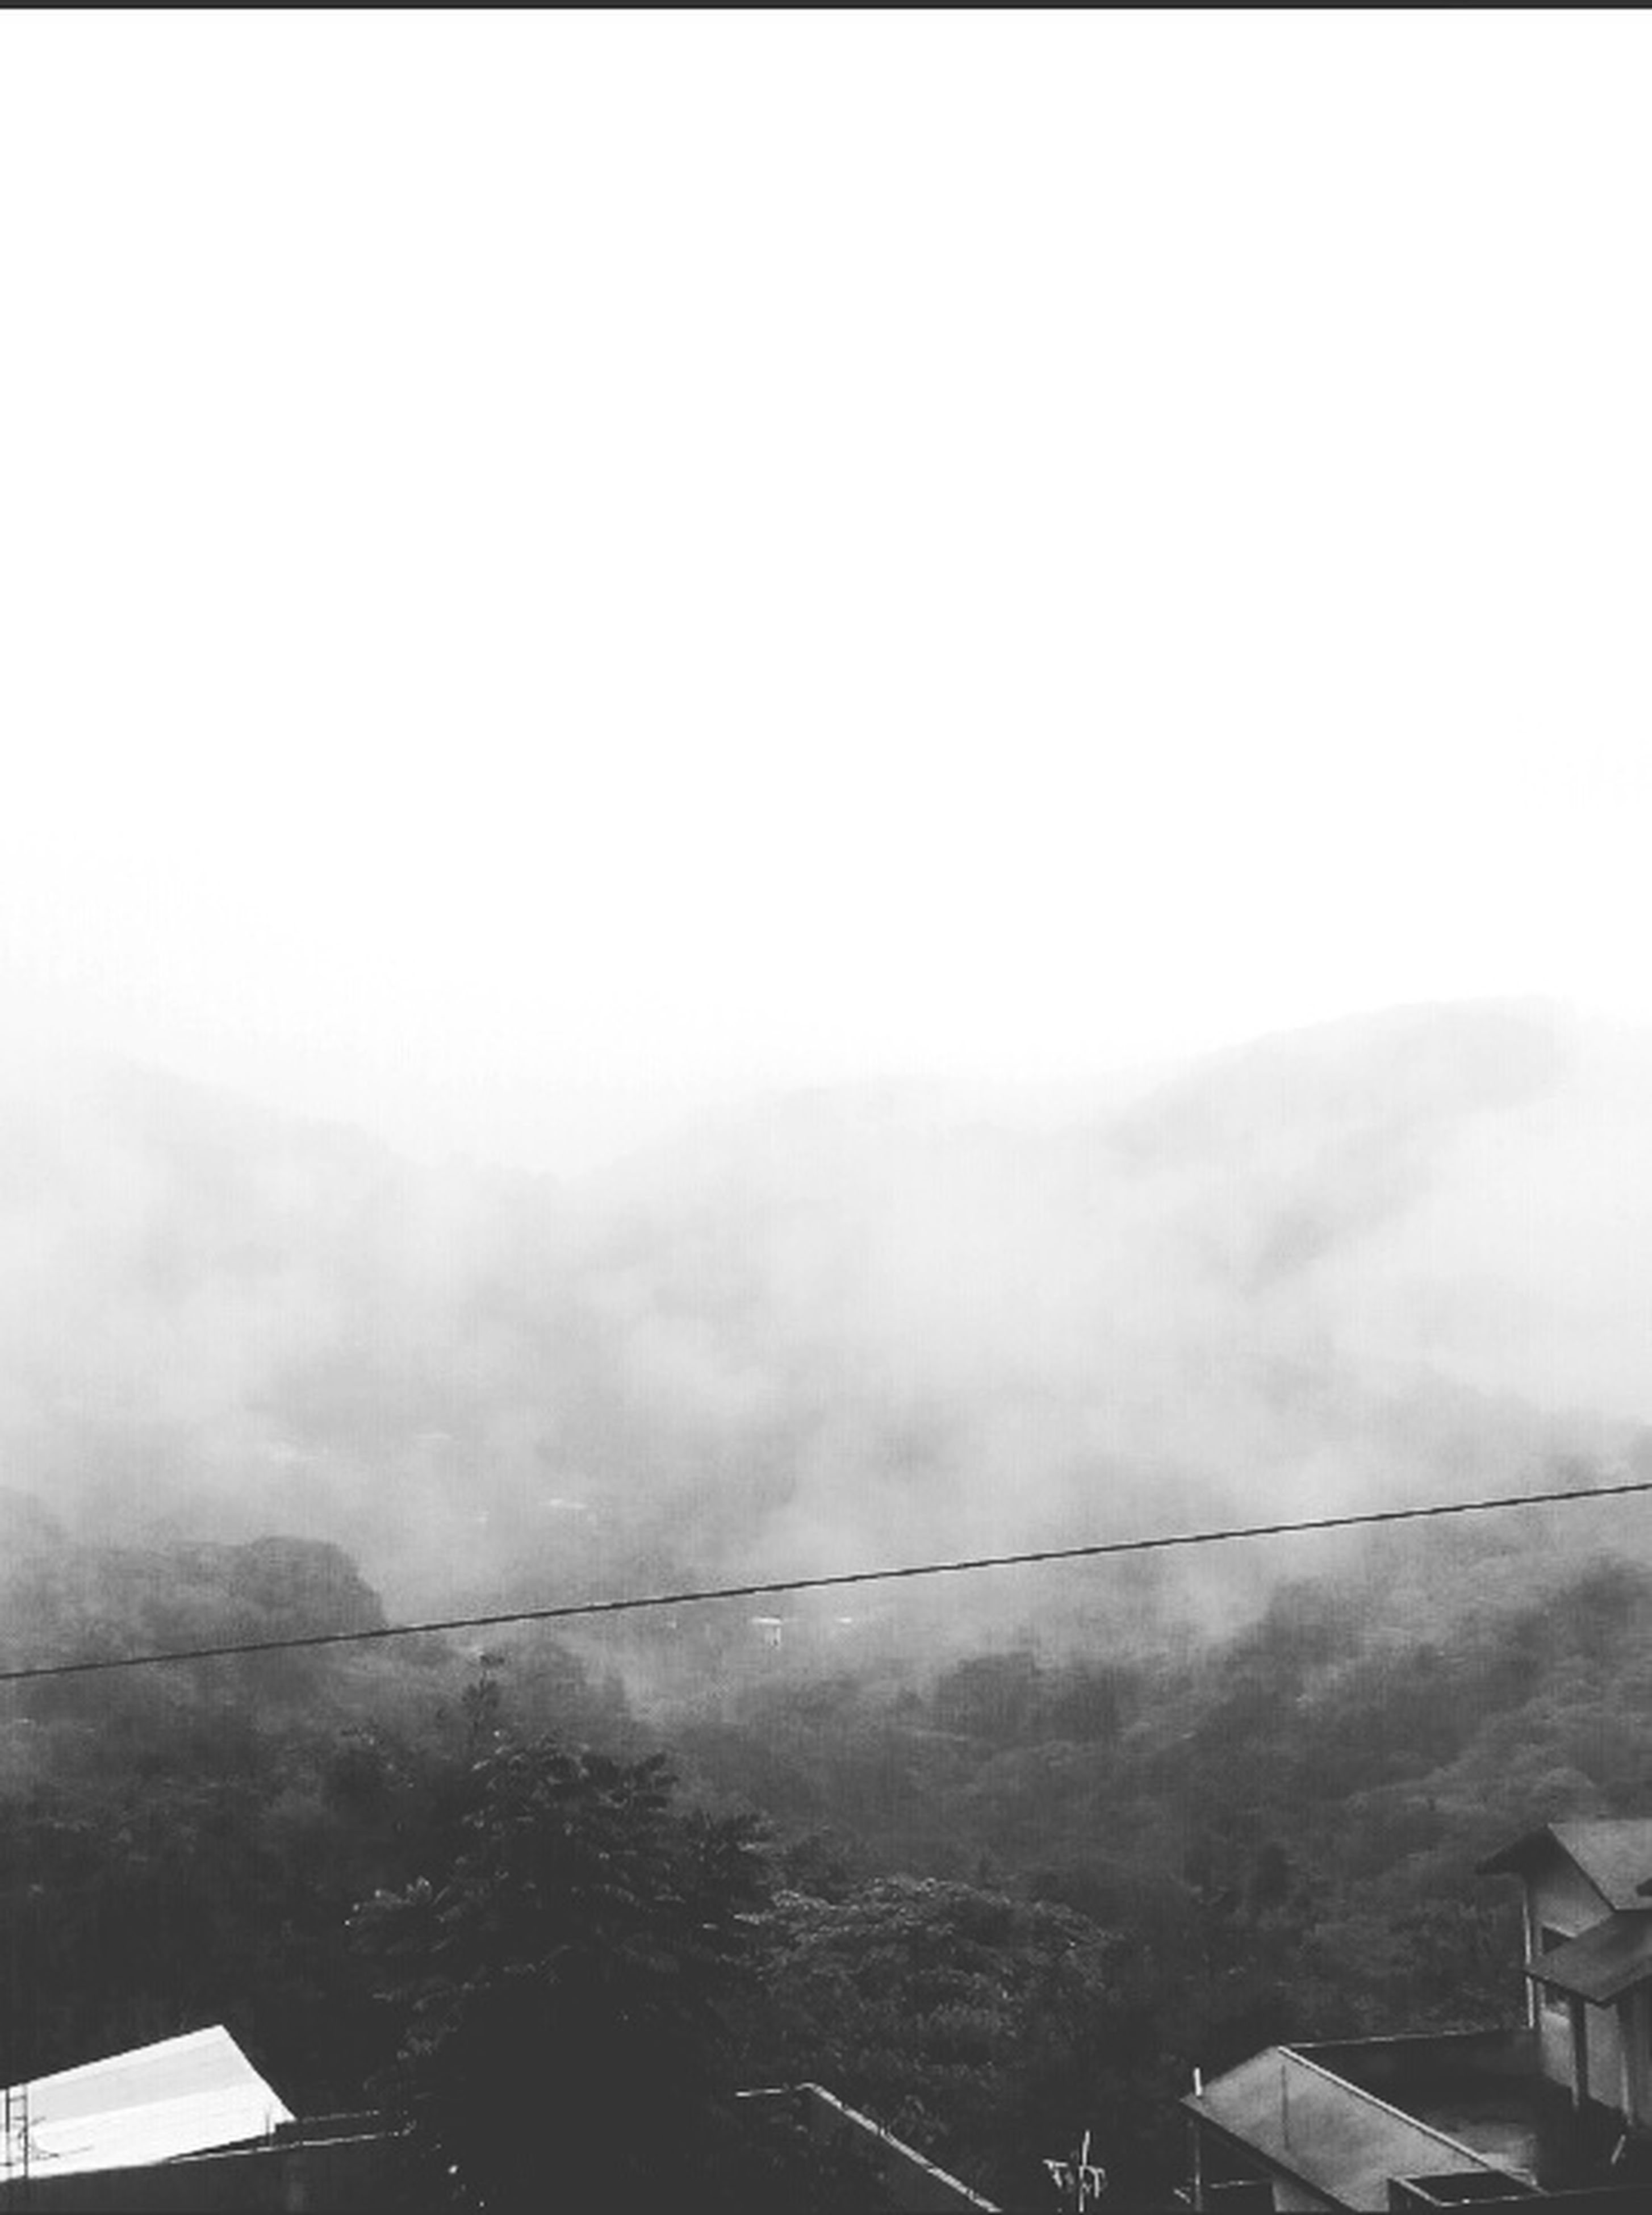 fog, day, outdoors, nature, built structure, architecture, no people, sky, mountain, building exterior, scenics, beauty in nature, tree